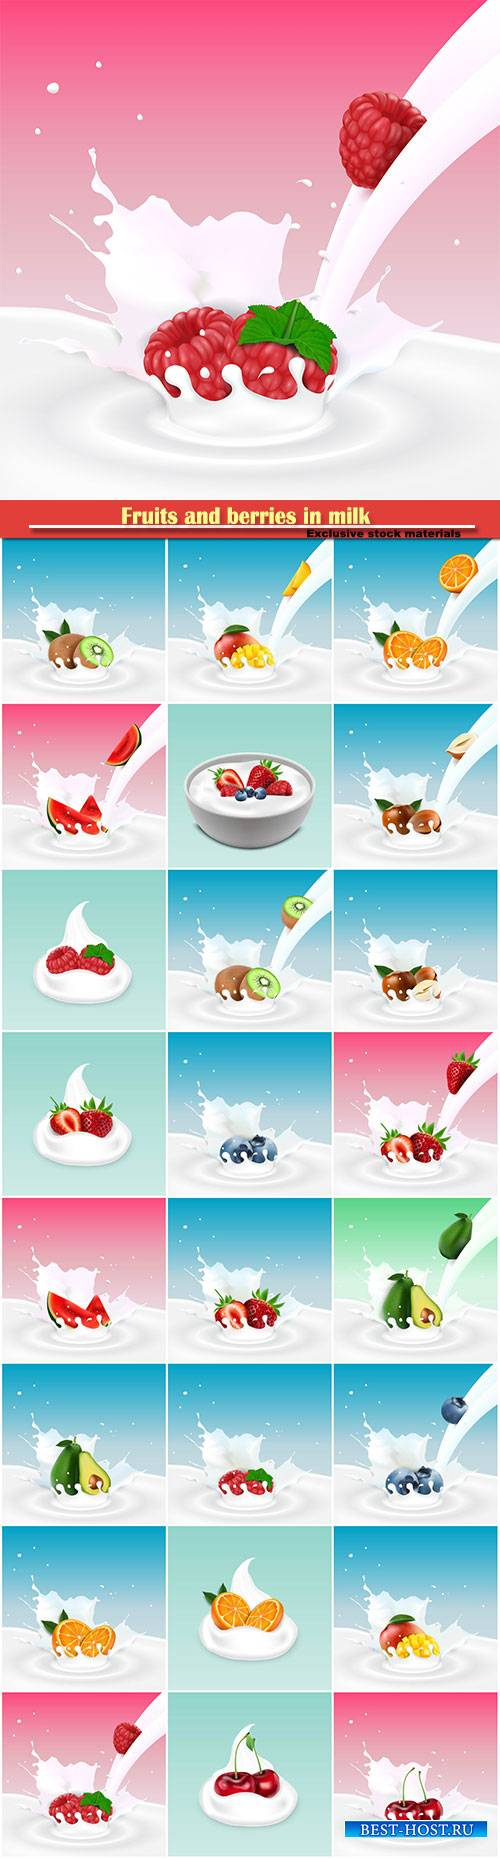 Fruits and berries in milk, vector illustration